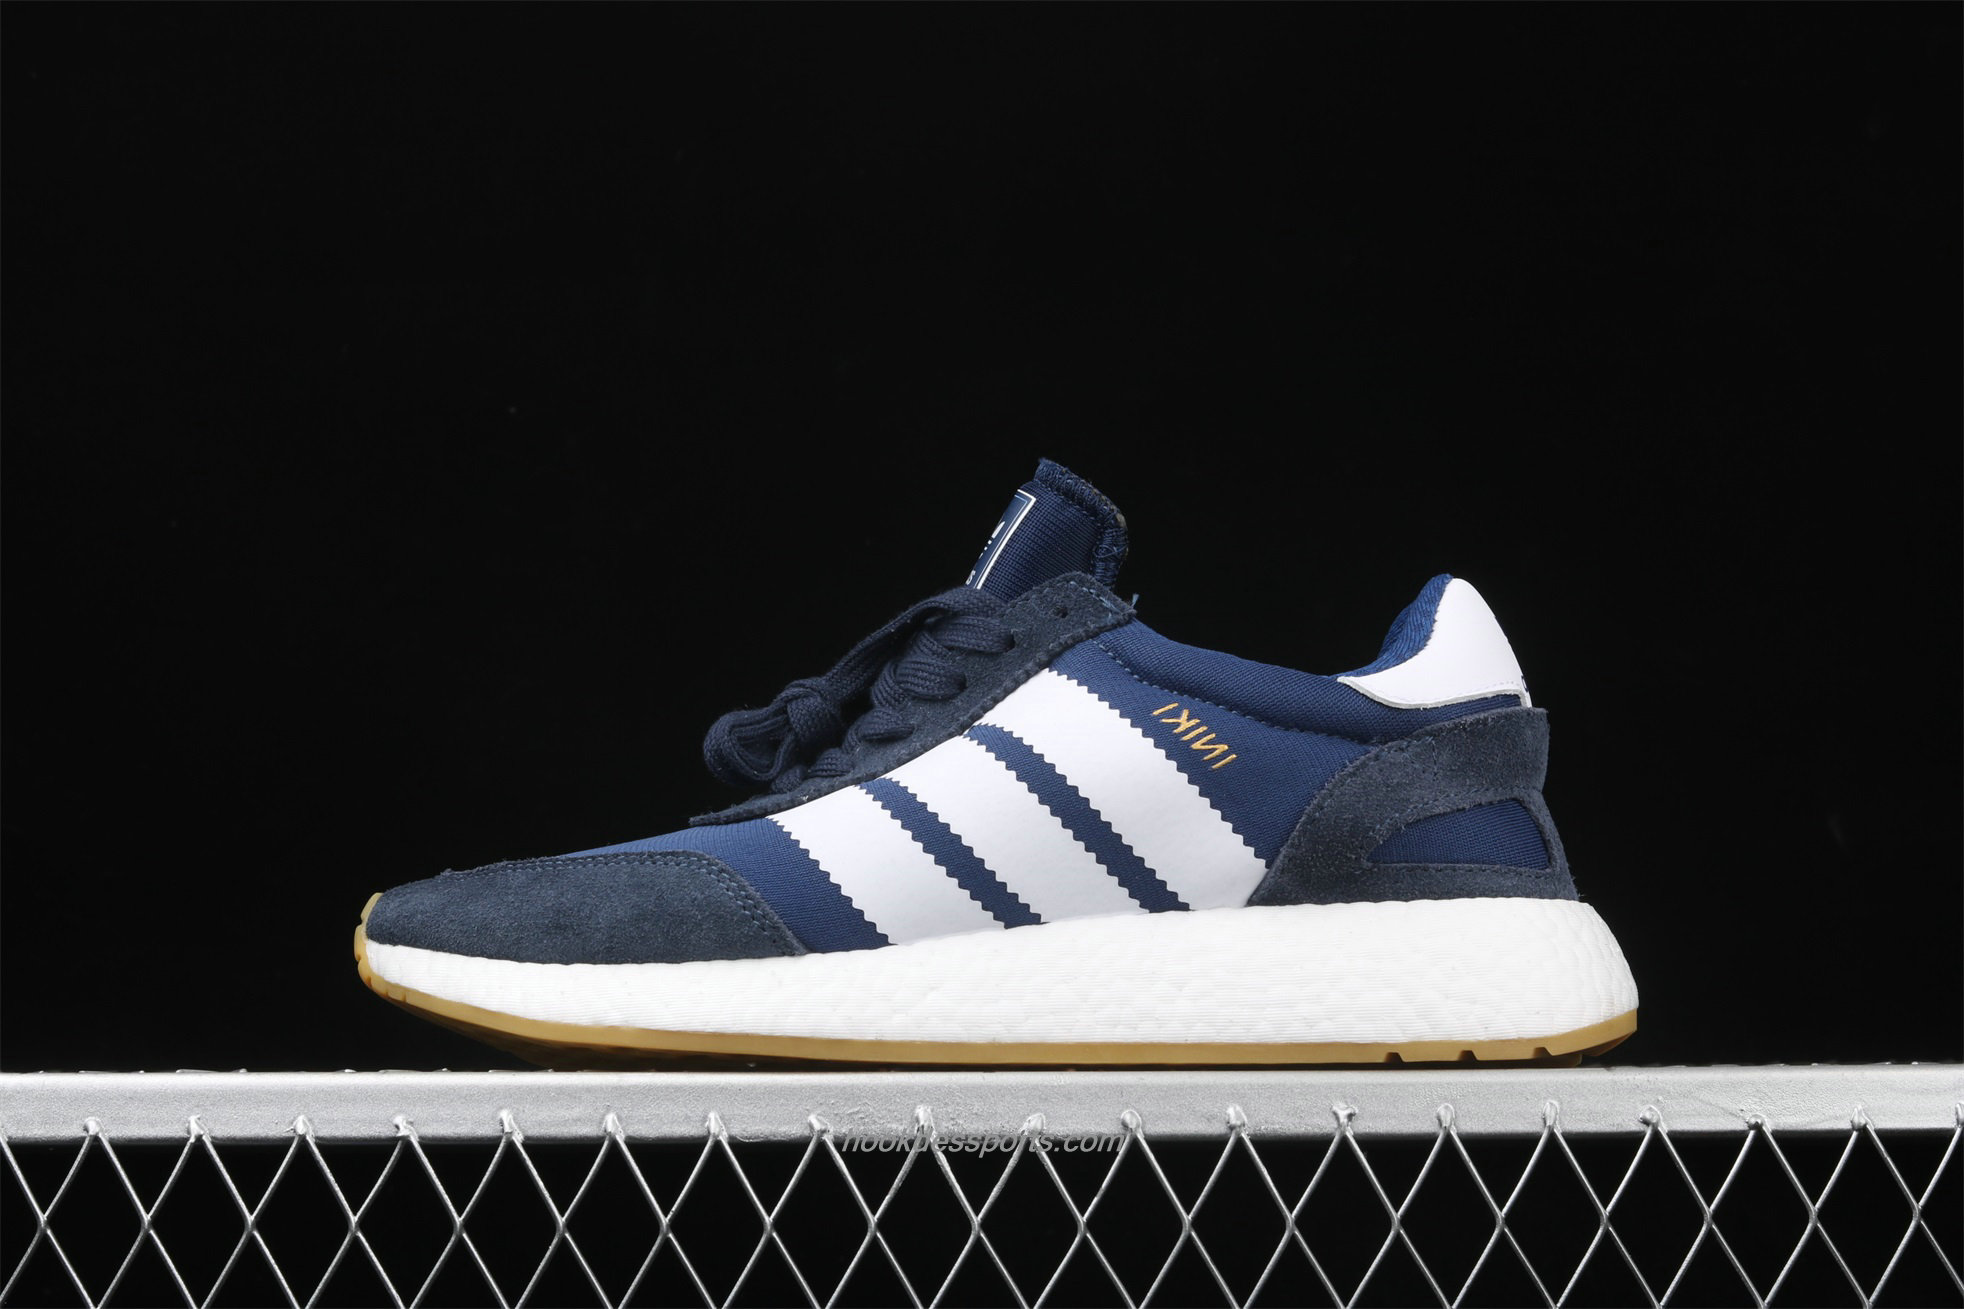 Chaussures Adidas Originals I-5923 BY9729 Bleu marin / Blanc